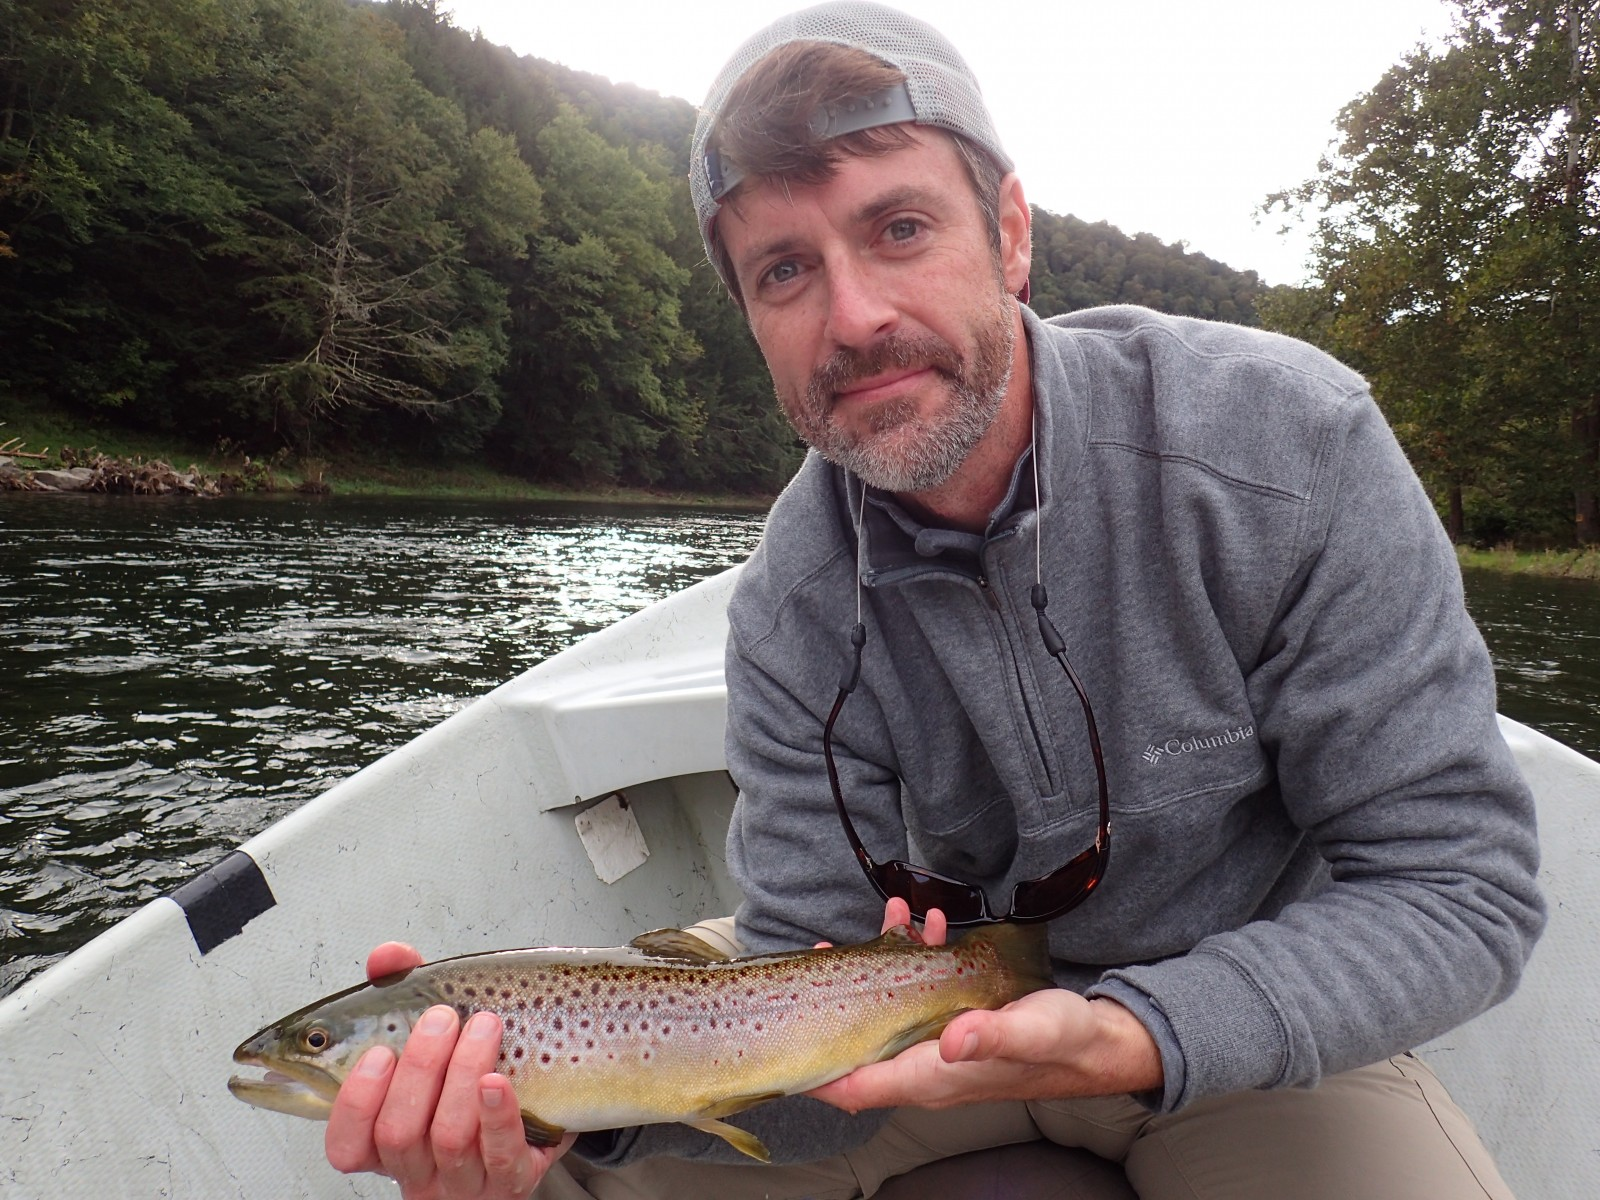 guided fly fishing tours on the west branch of the delaware river for brown trout with filingo fly fishing and jesse filingo